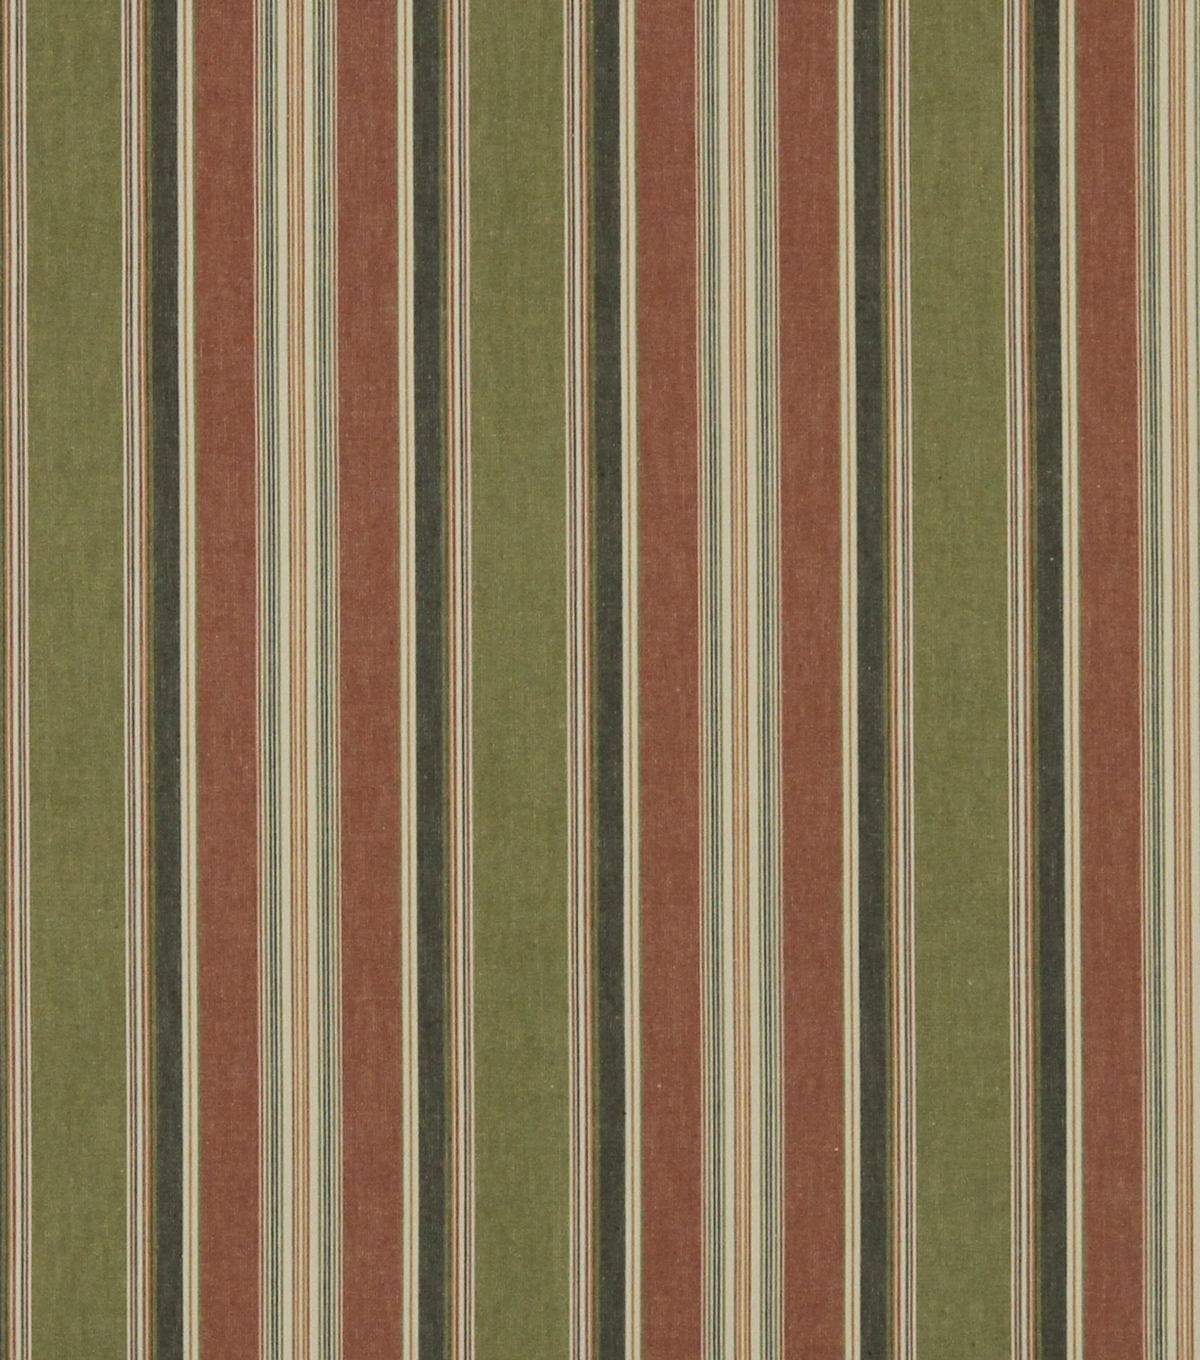 Home Decor 8\u0022x8\u0022 Fabric Swatch-Robert Allen Fresh Stripe Pomegranate